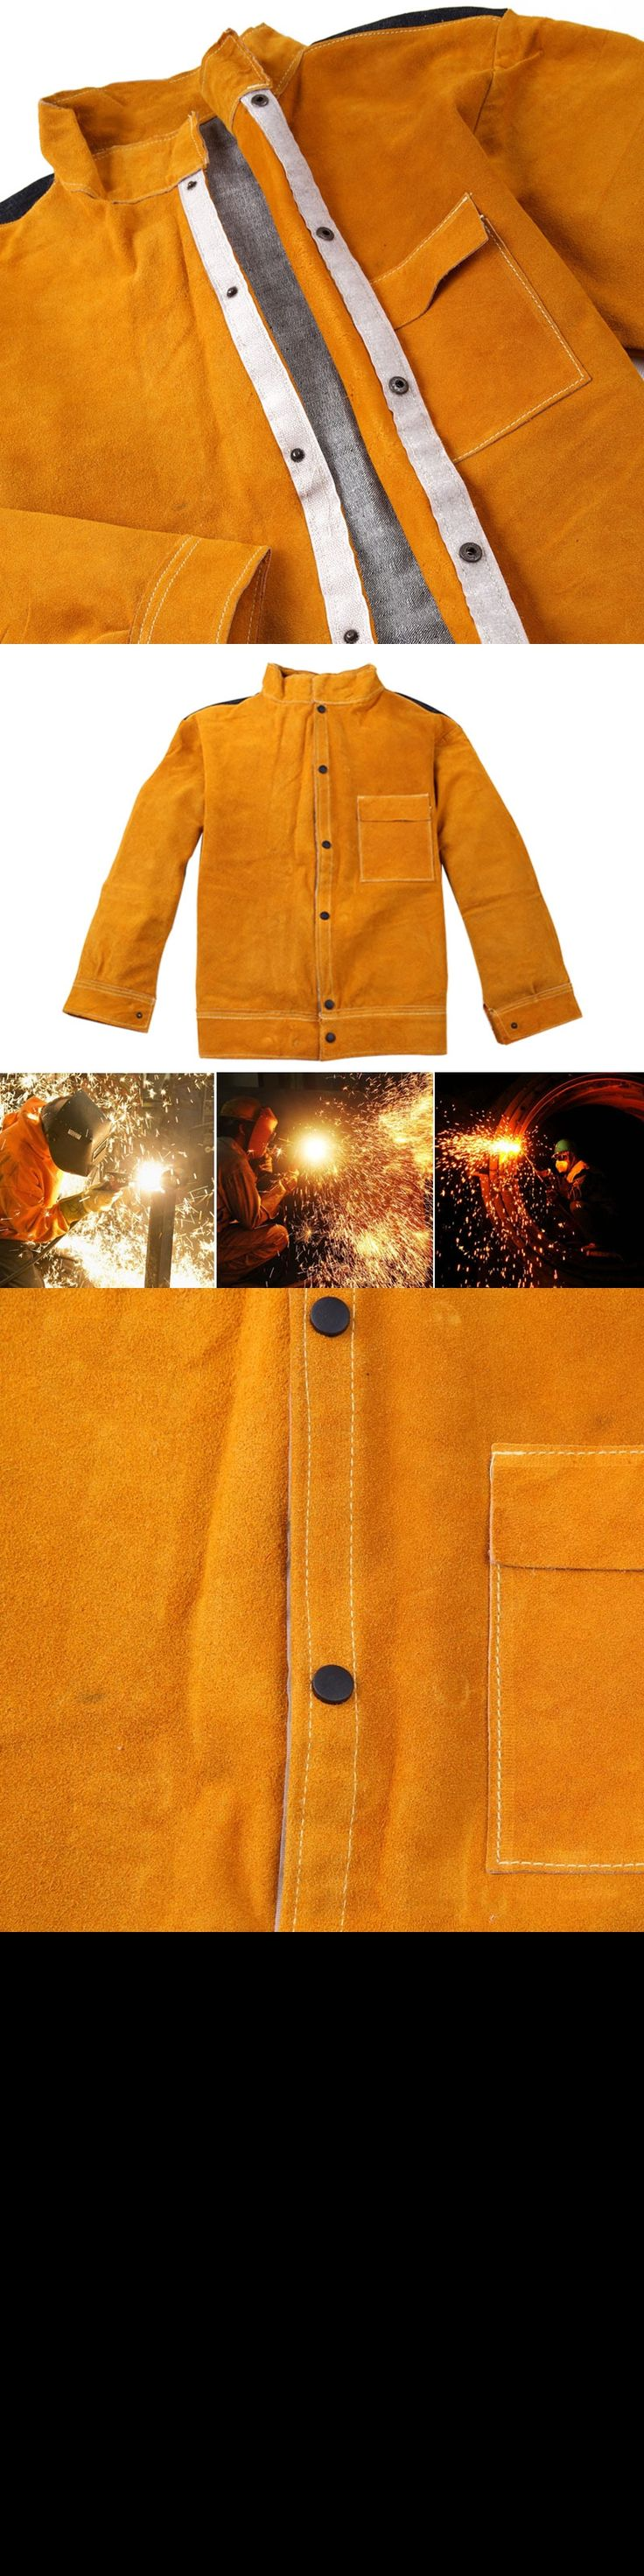 Welder Jacket Cow Leather Apron Protective Coat Long Sleeves Welding Clothing Welders Workplace Safety Apparel L-4XL FS9